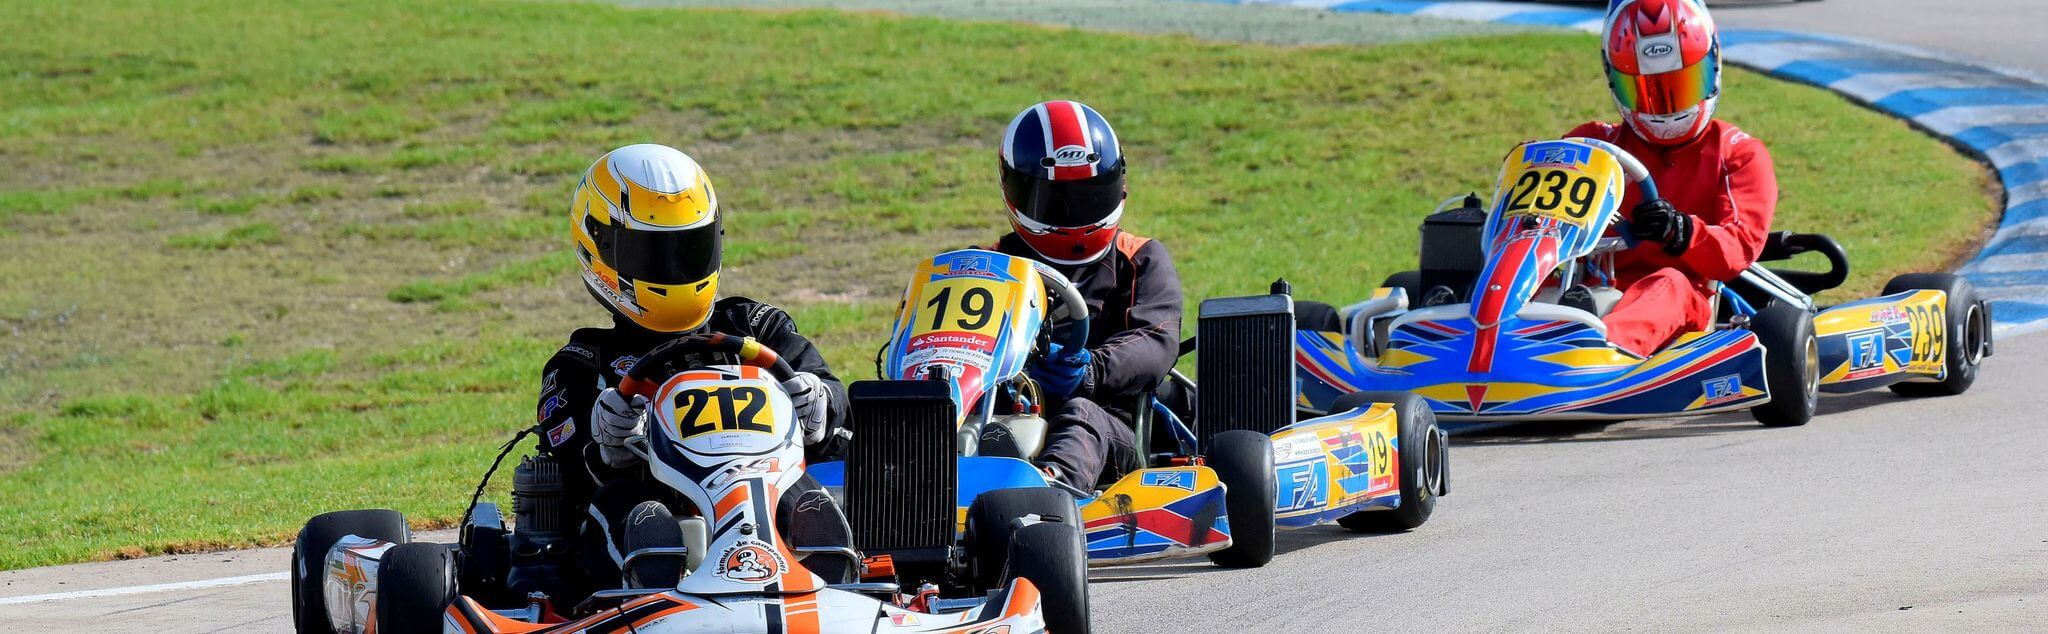 Karting in Vizcaya